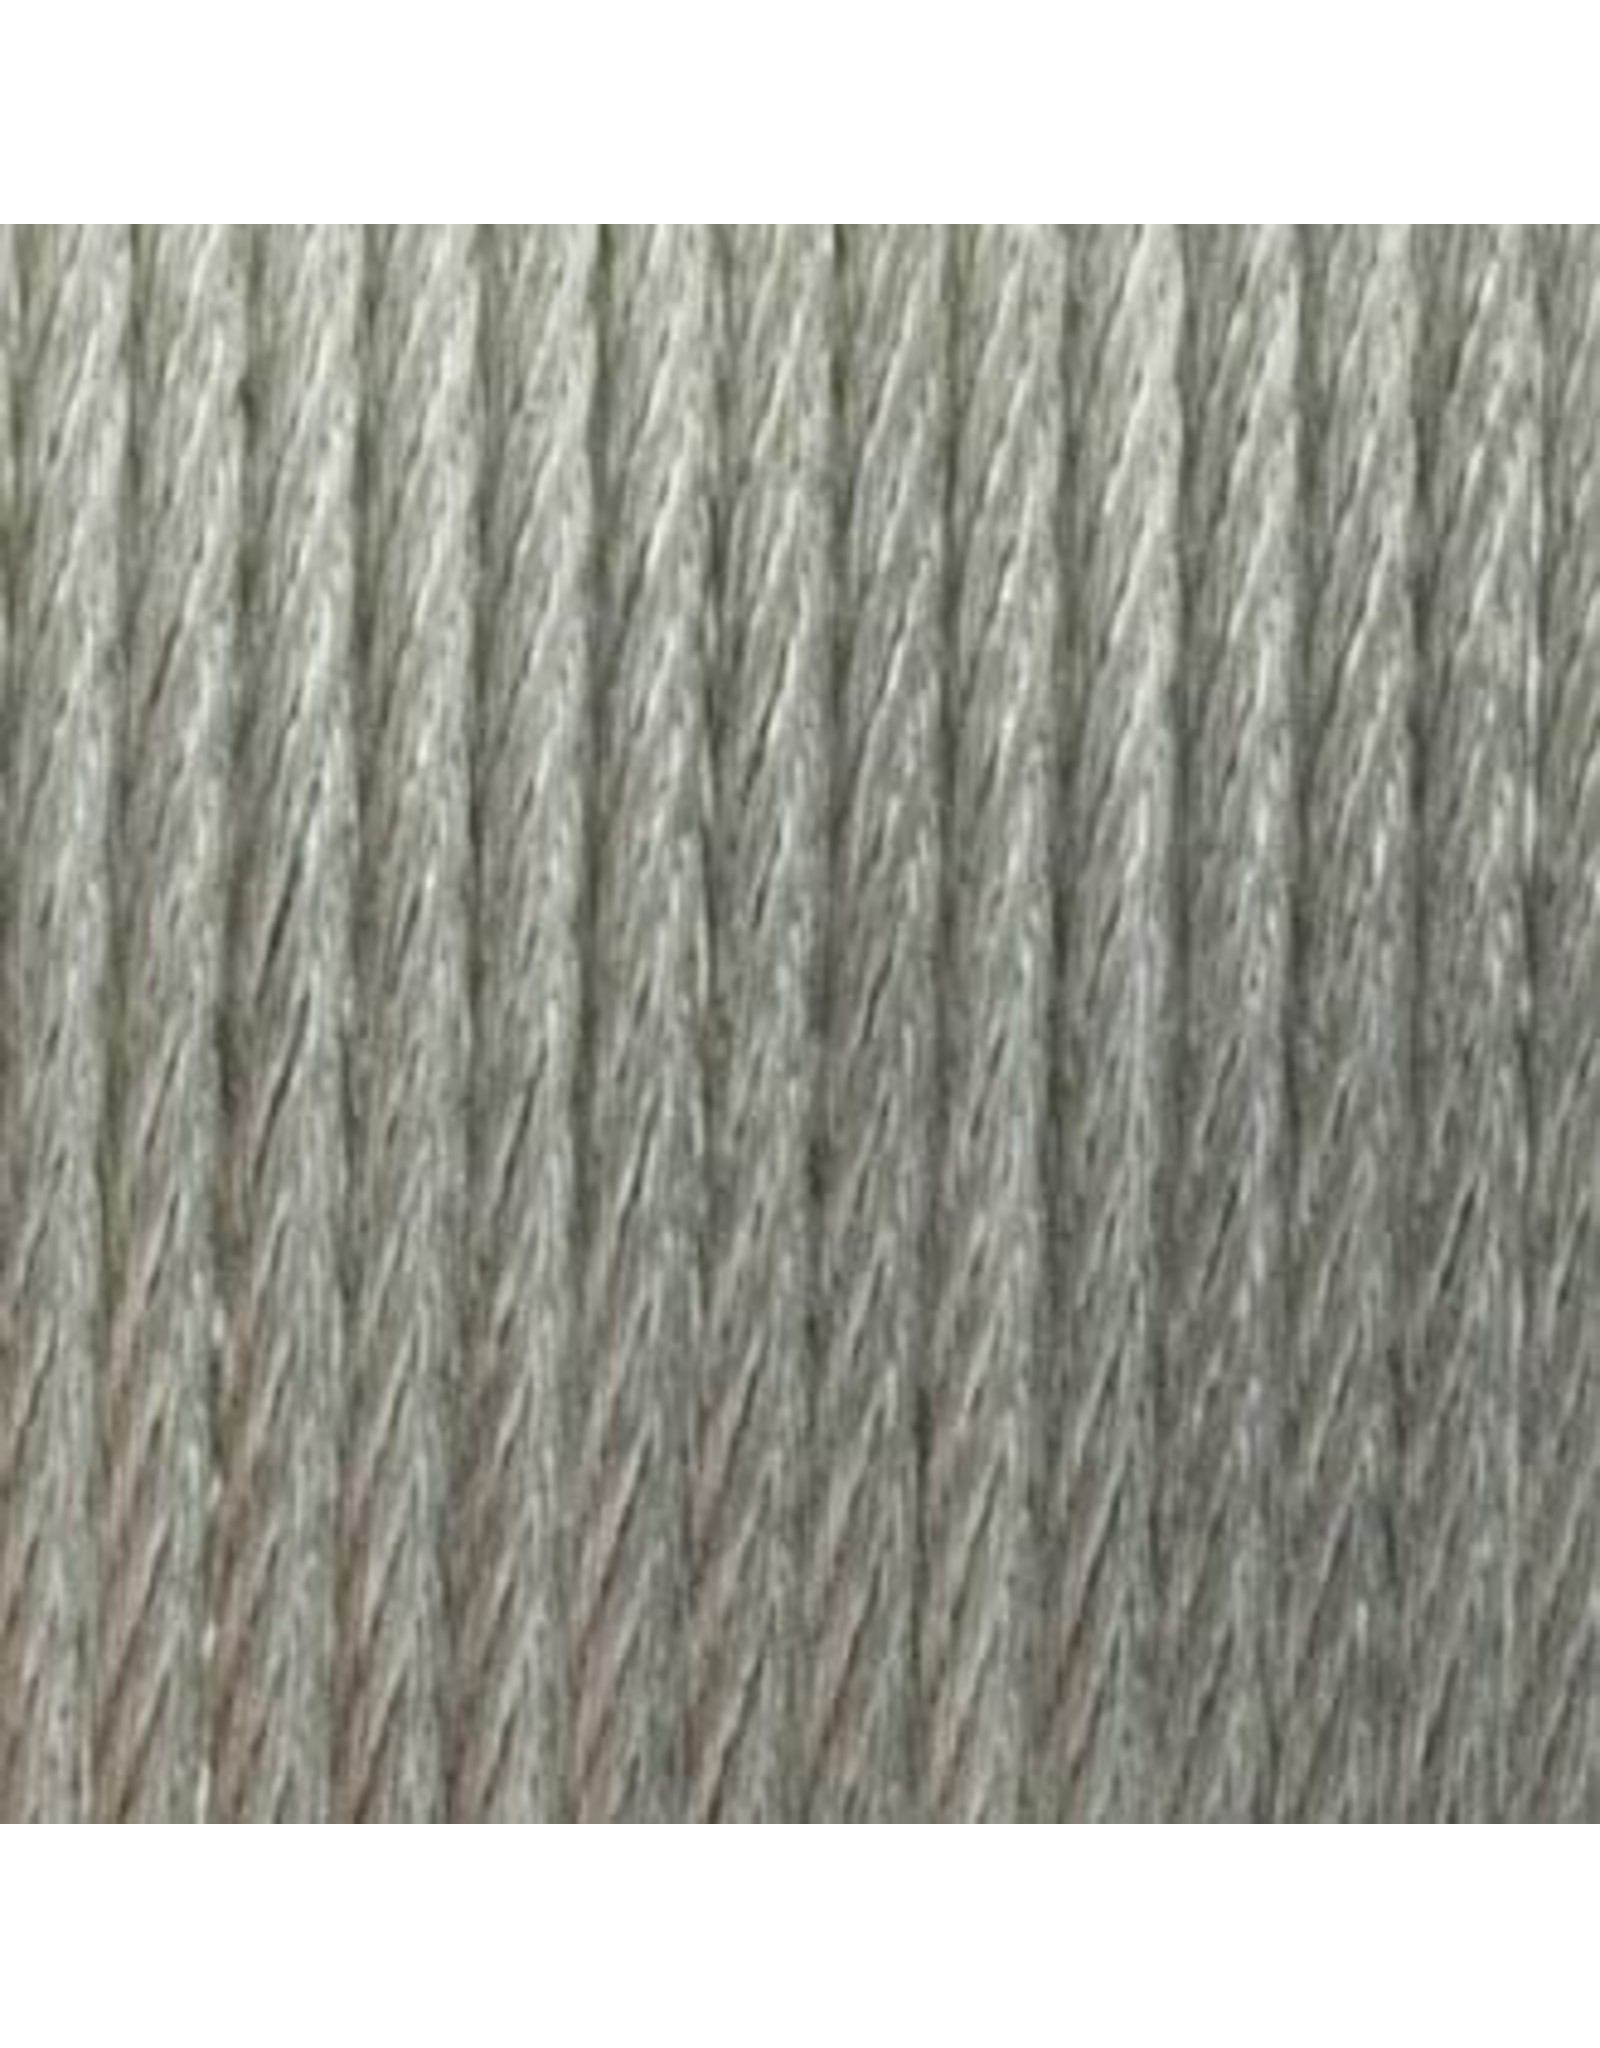 Gale Force 9 Miniatures Tools: Hobby Round Iron Cable (1.0mm)